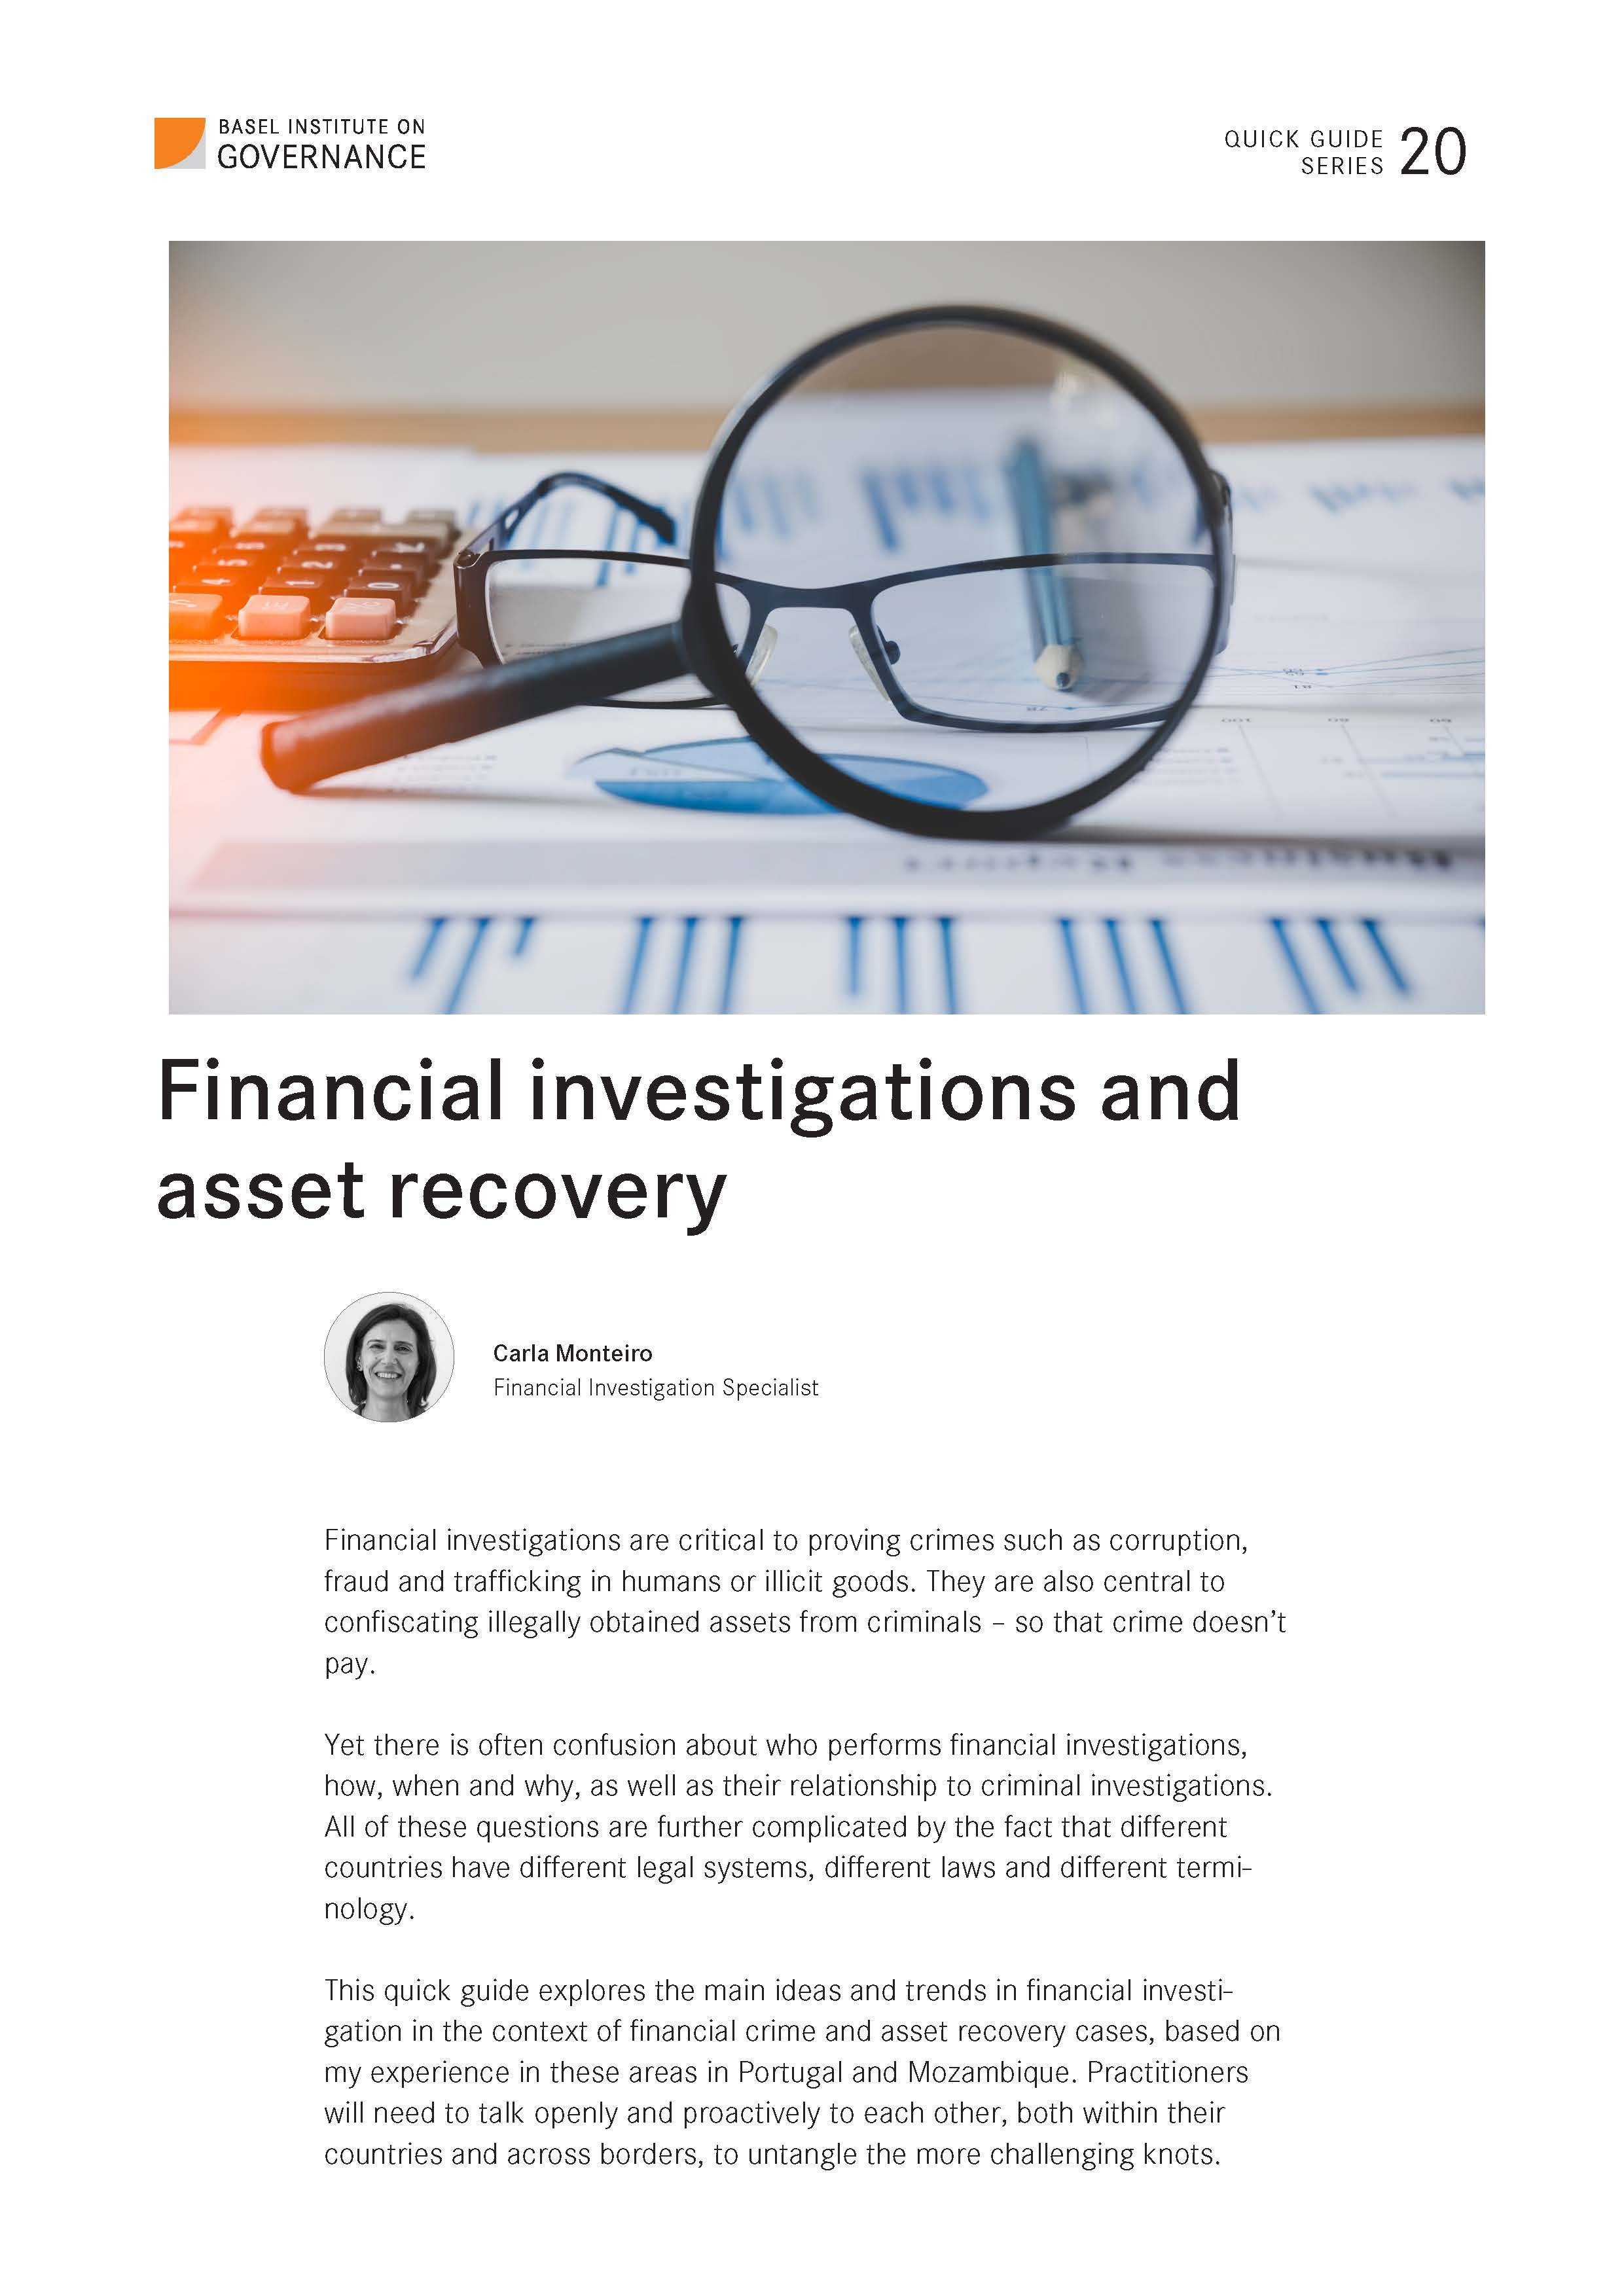 Cover page of Financial investigations and asset recovery guide